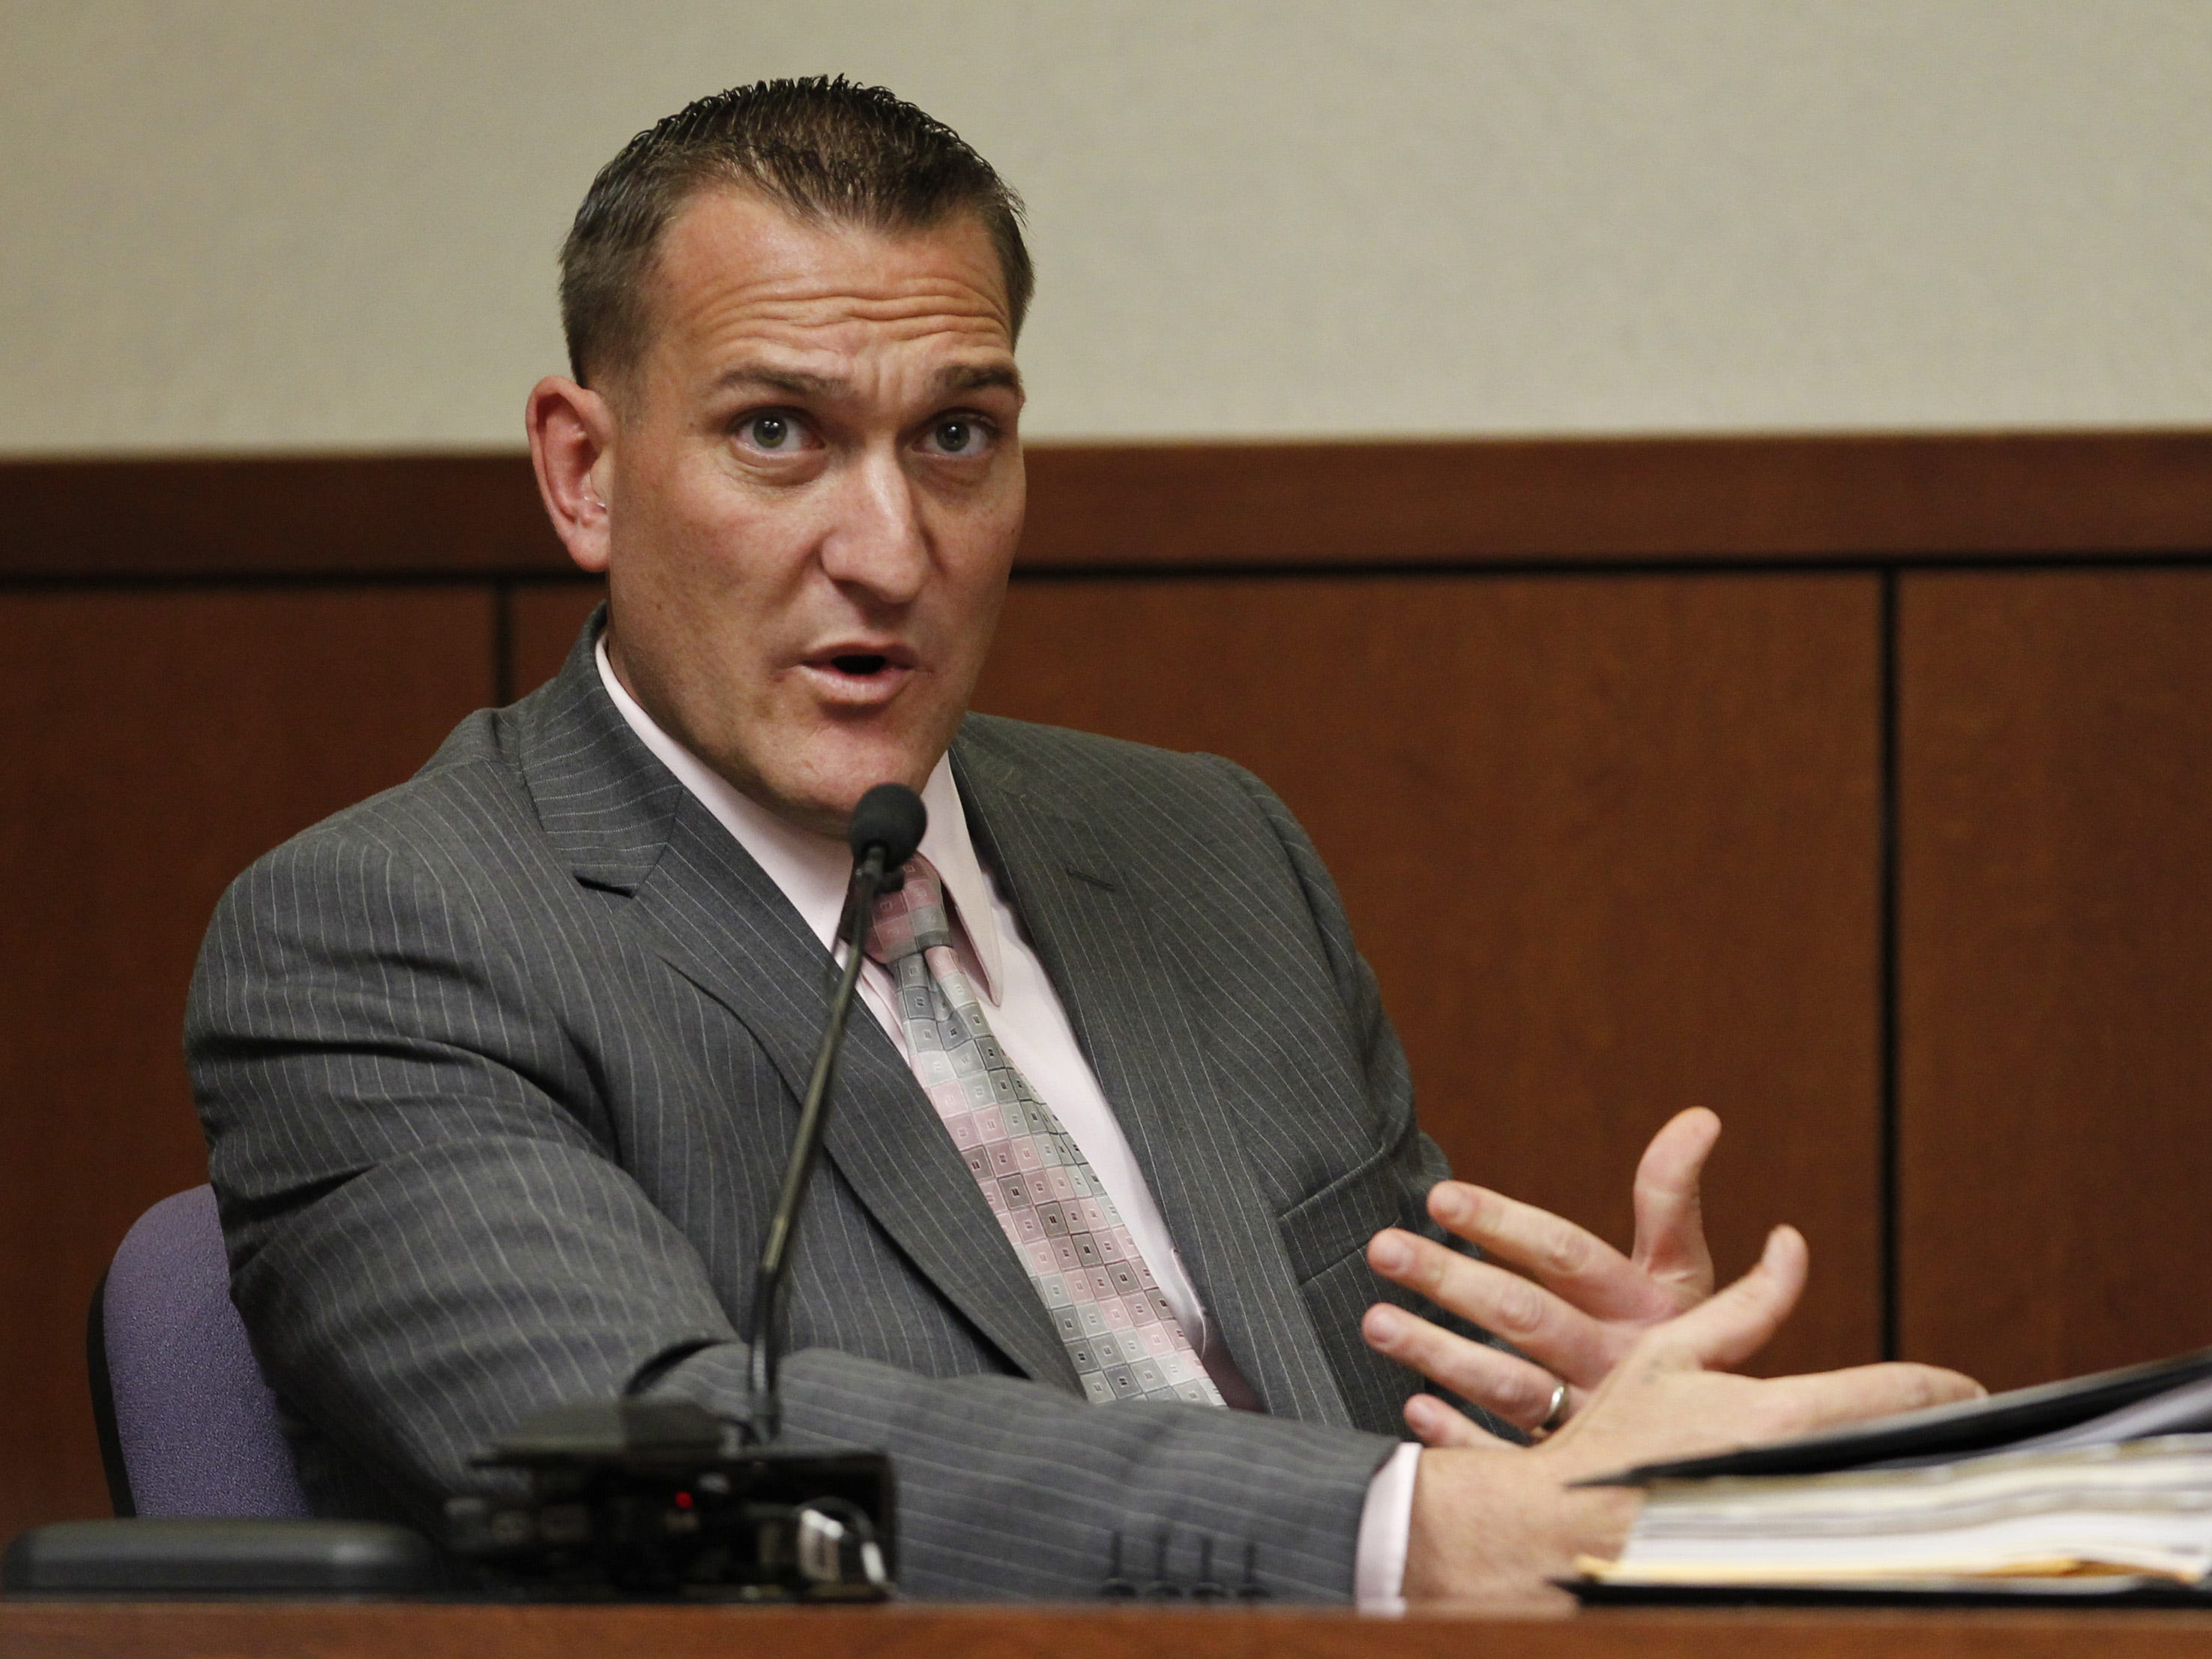 As seen in a 2013, then Louisville Metro Police Detective Jon Lesher addresses the jury during a murder trail at the Jefferson County Judicial Center.